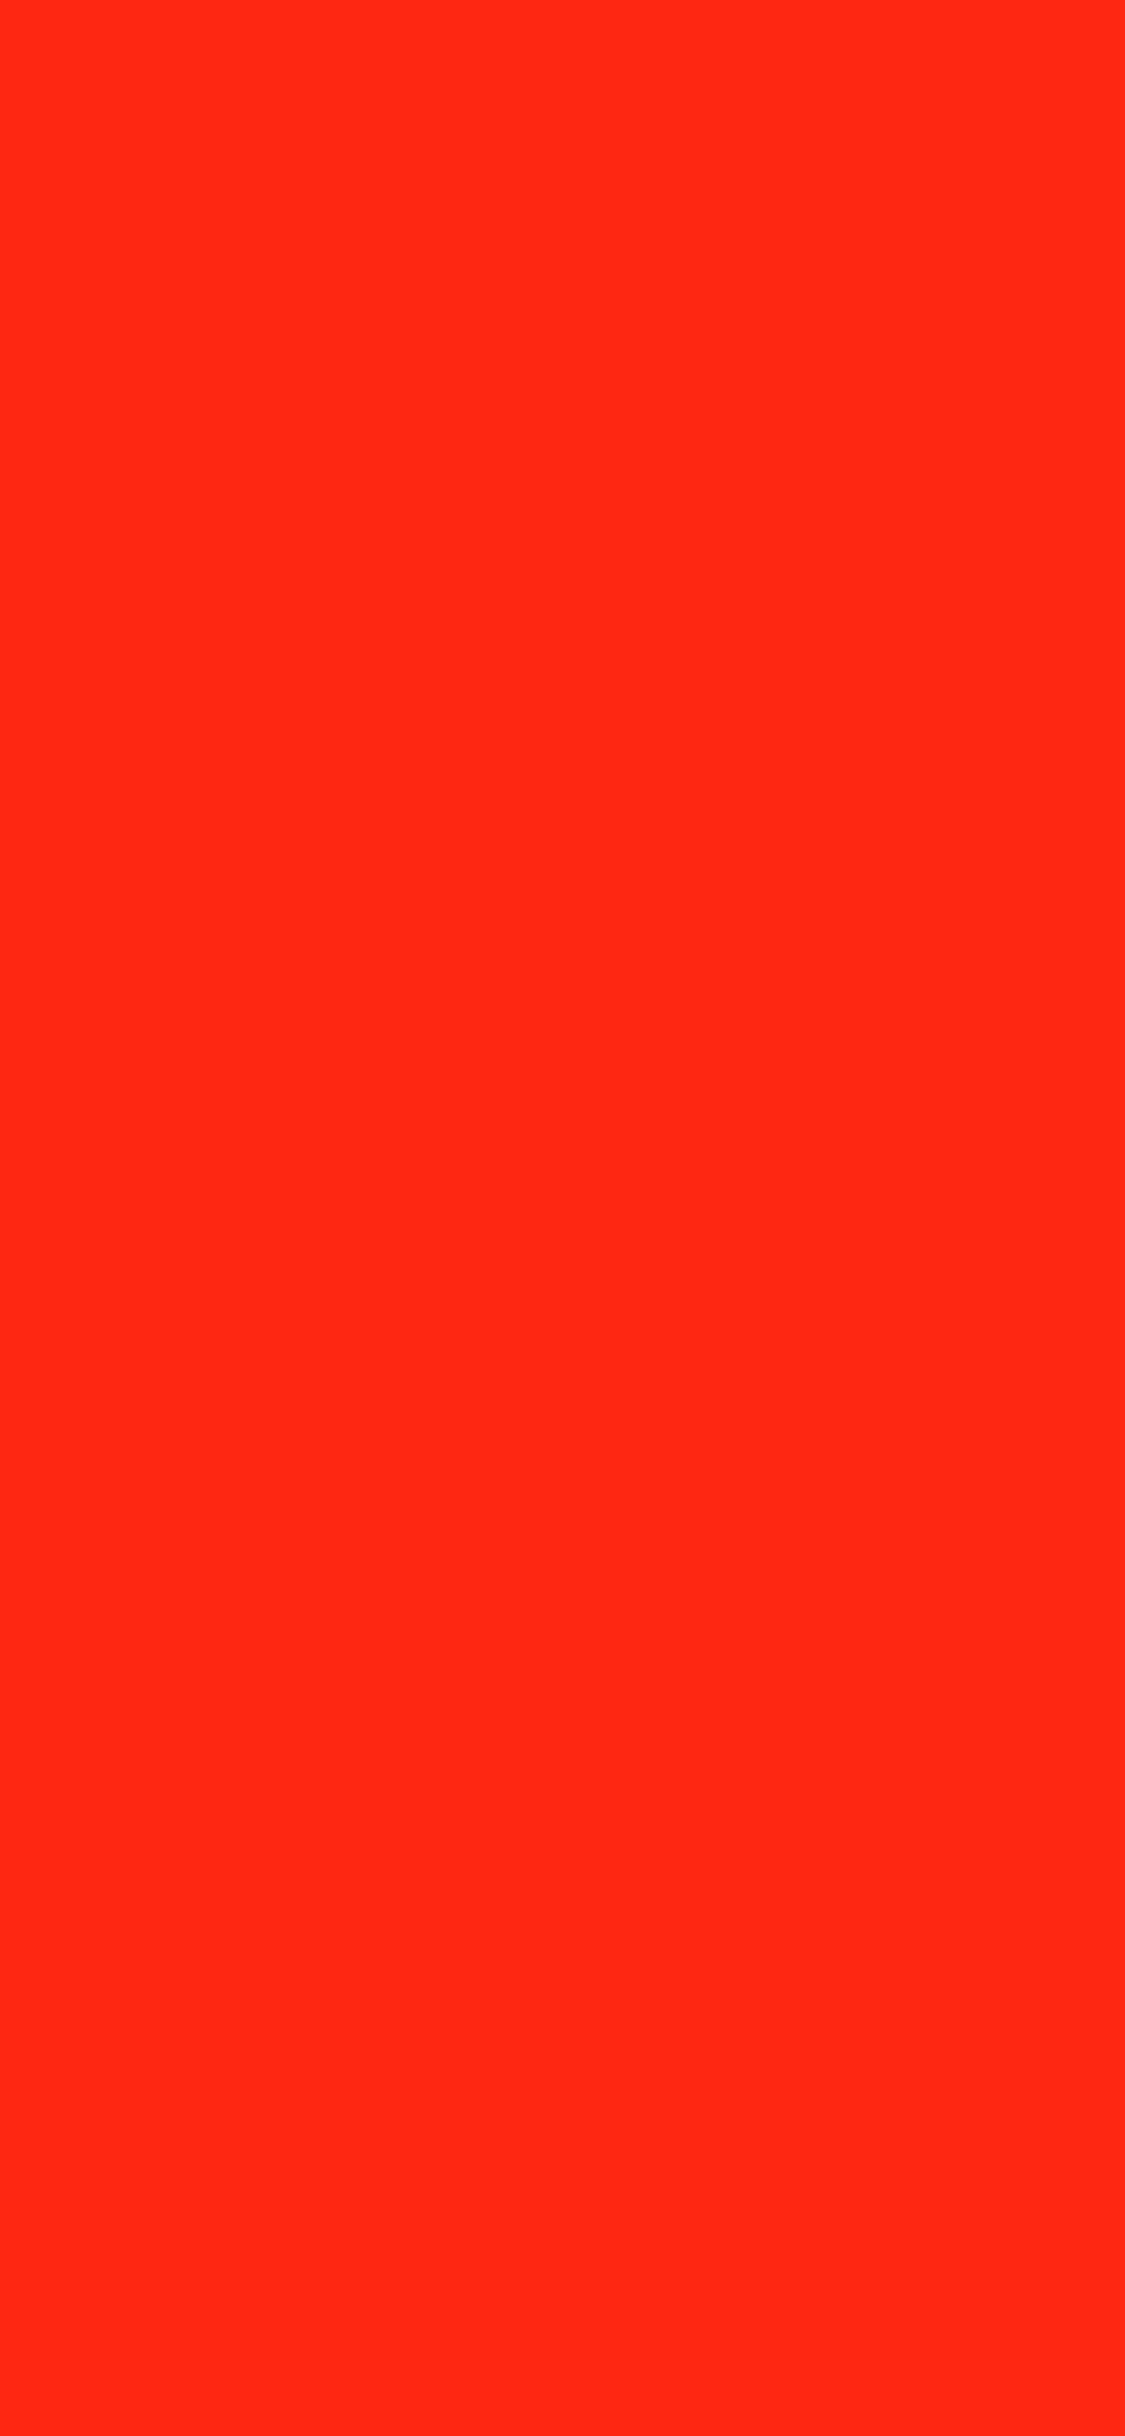 1125x2436 Red RYB Solid Color Background